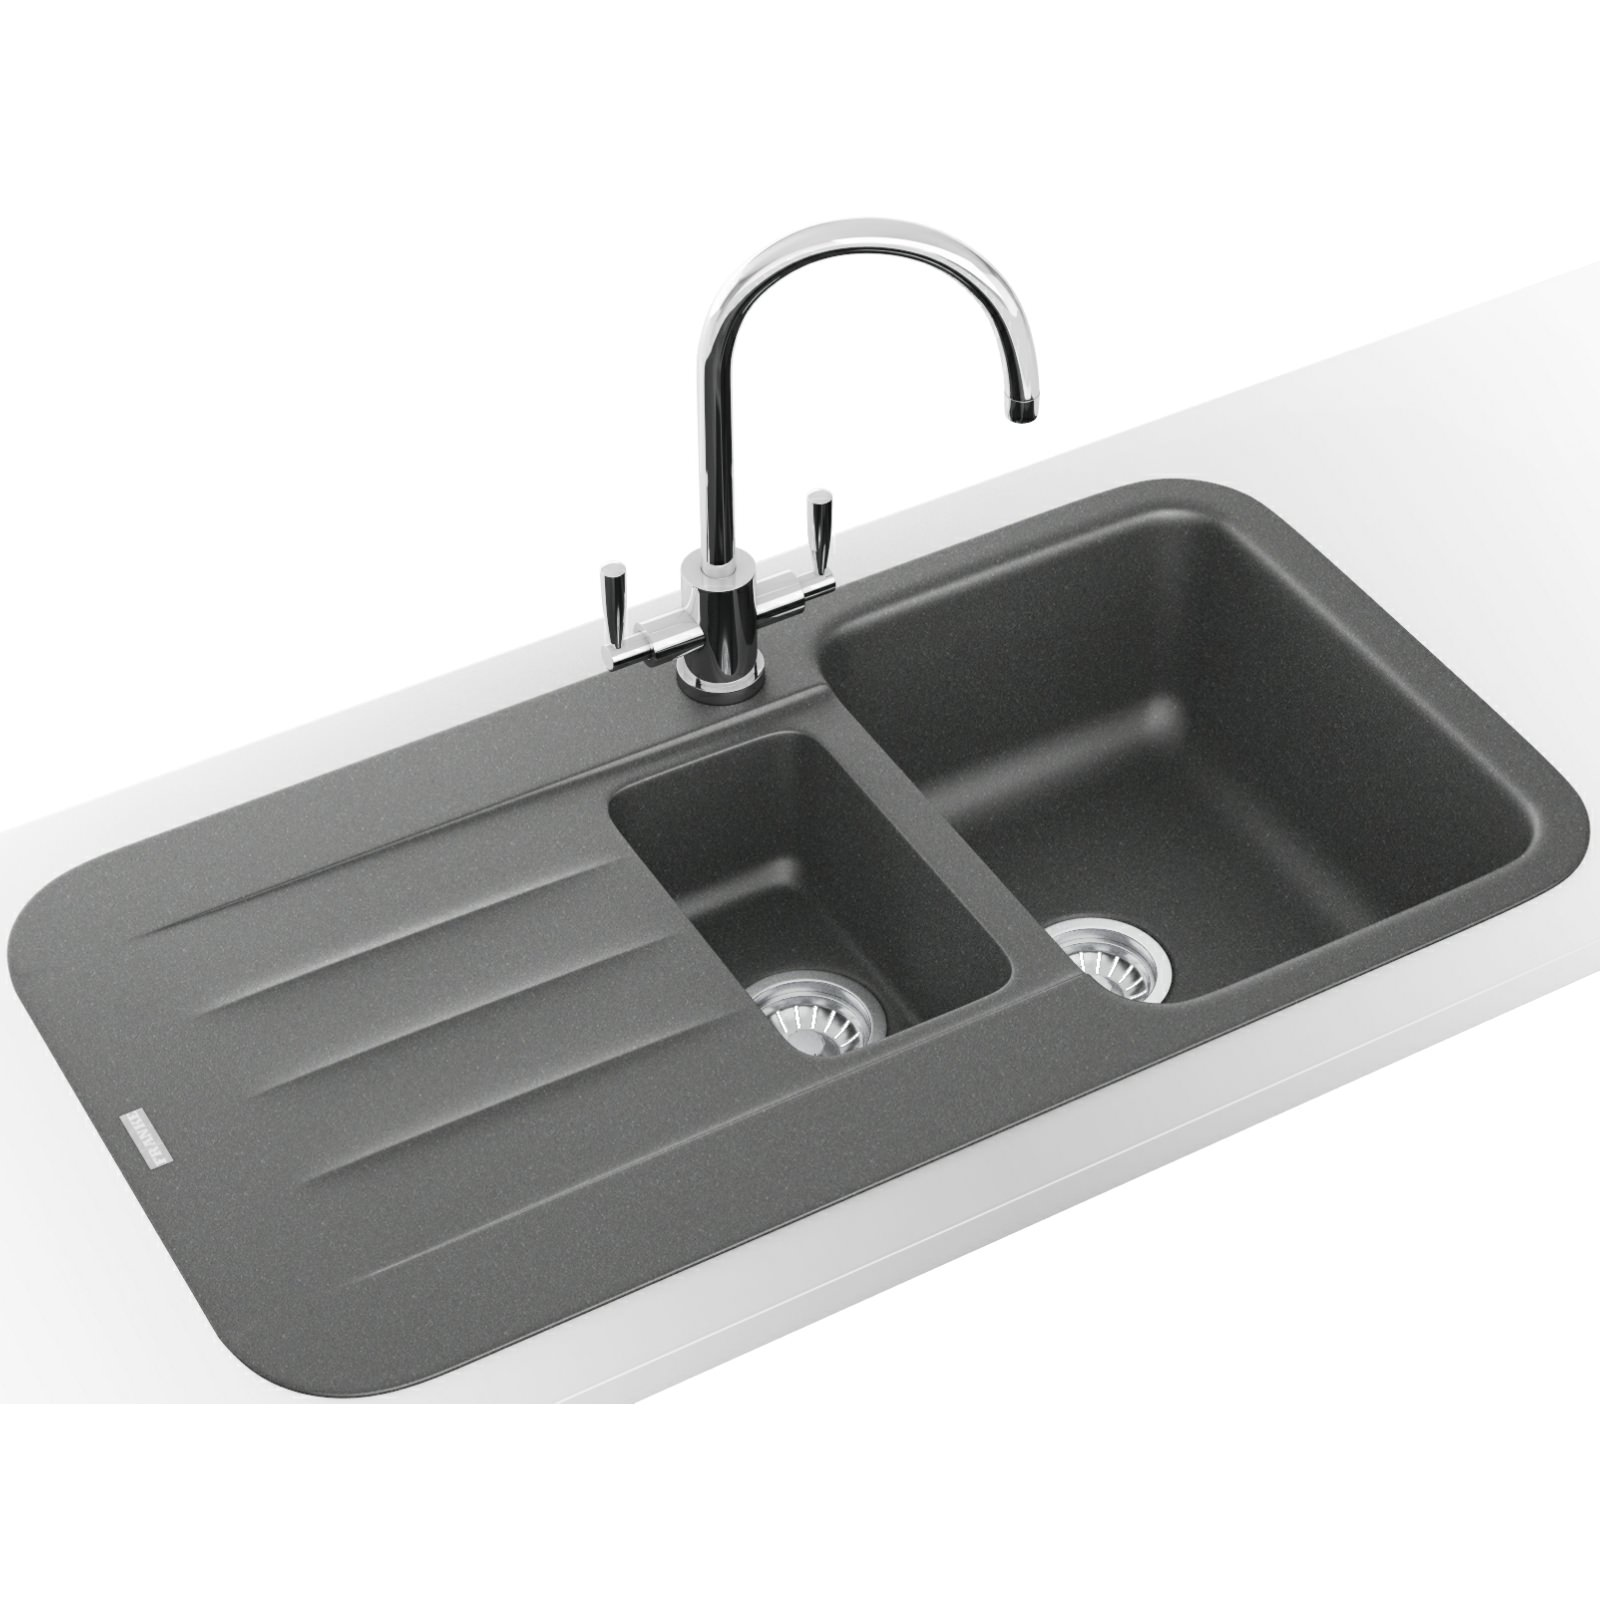 Franke Sinks And Taps : Franke Pebel DP PBG 651 Fragranite Stone Grey Inset Sink And Tap 114 ...